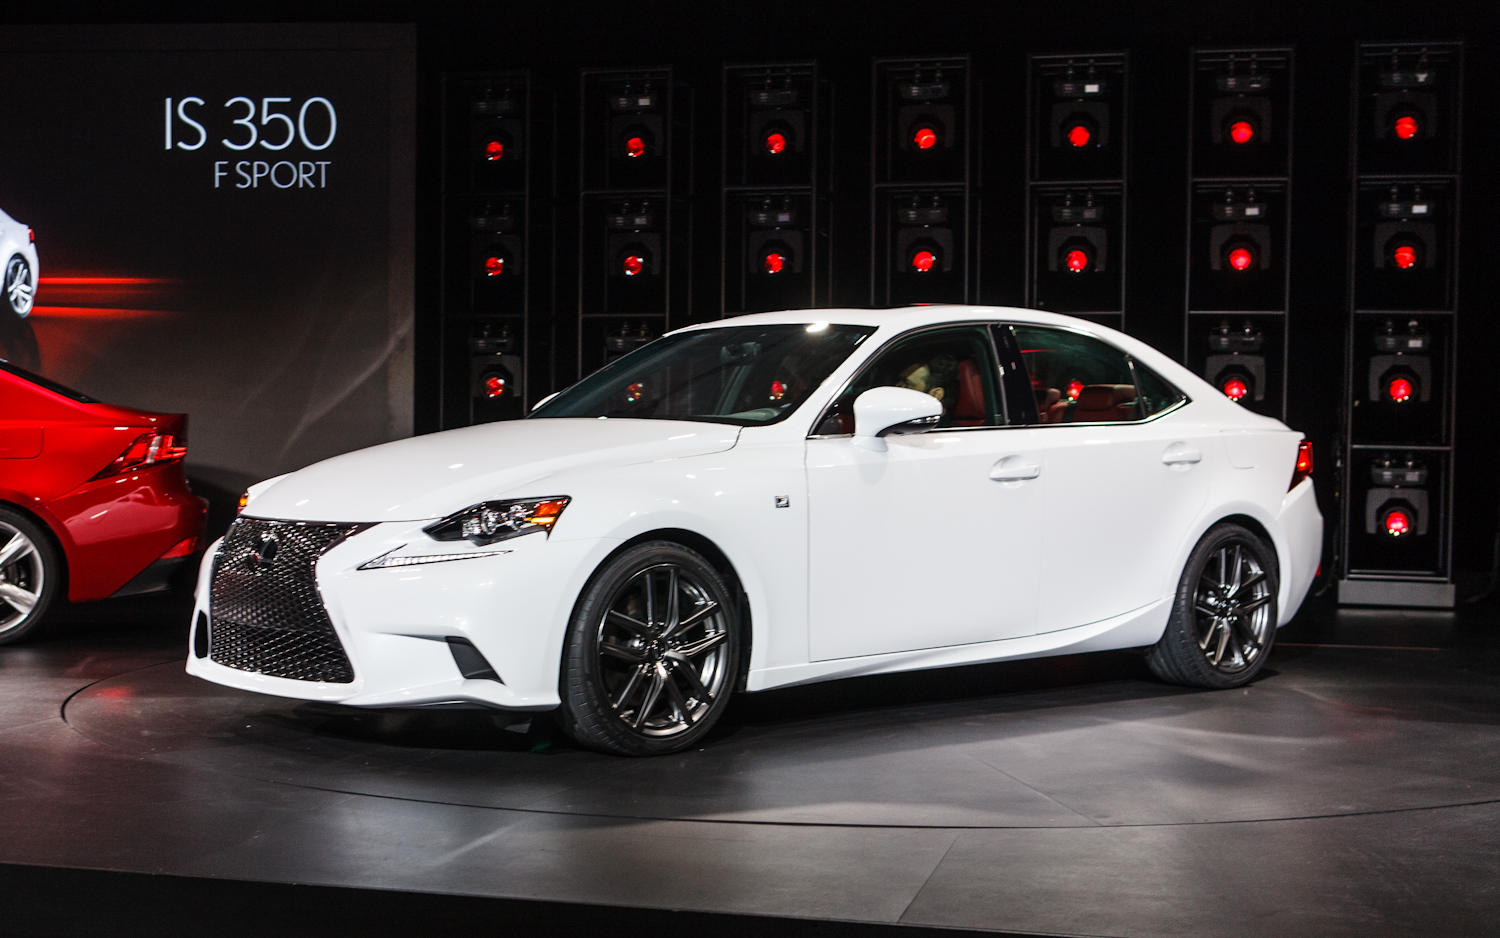 2014 Lexus IS First Look - Motor Trend